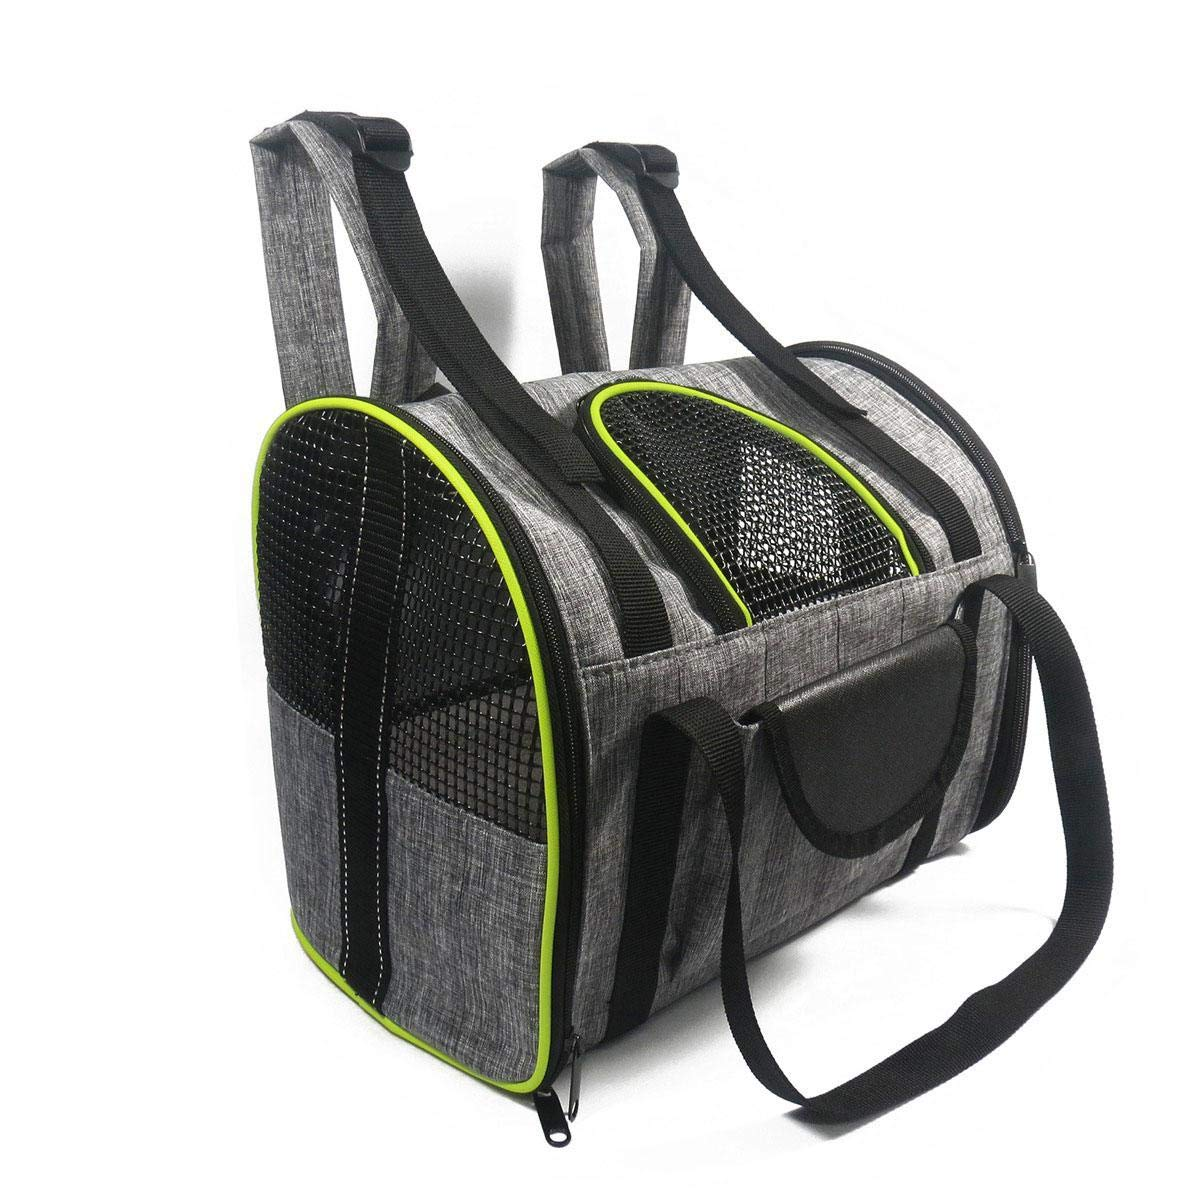 Airline Approved Pet Carrier, leegoal Portable Breathable Foldable Soft Travel Friendly Pet Carrier Bag Carry Your Pet with You Safely and Comfortably